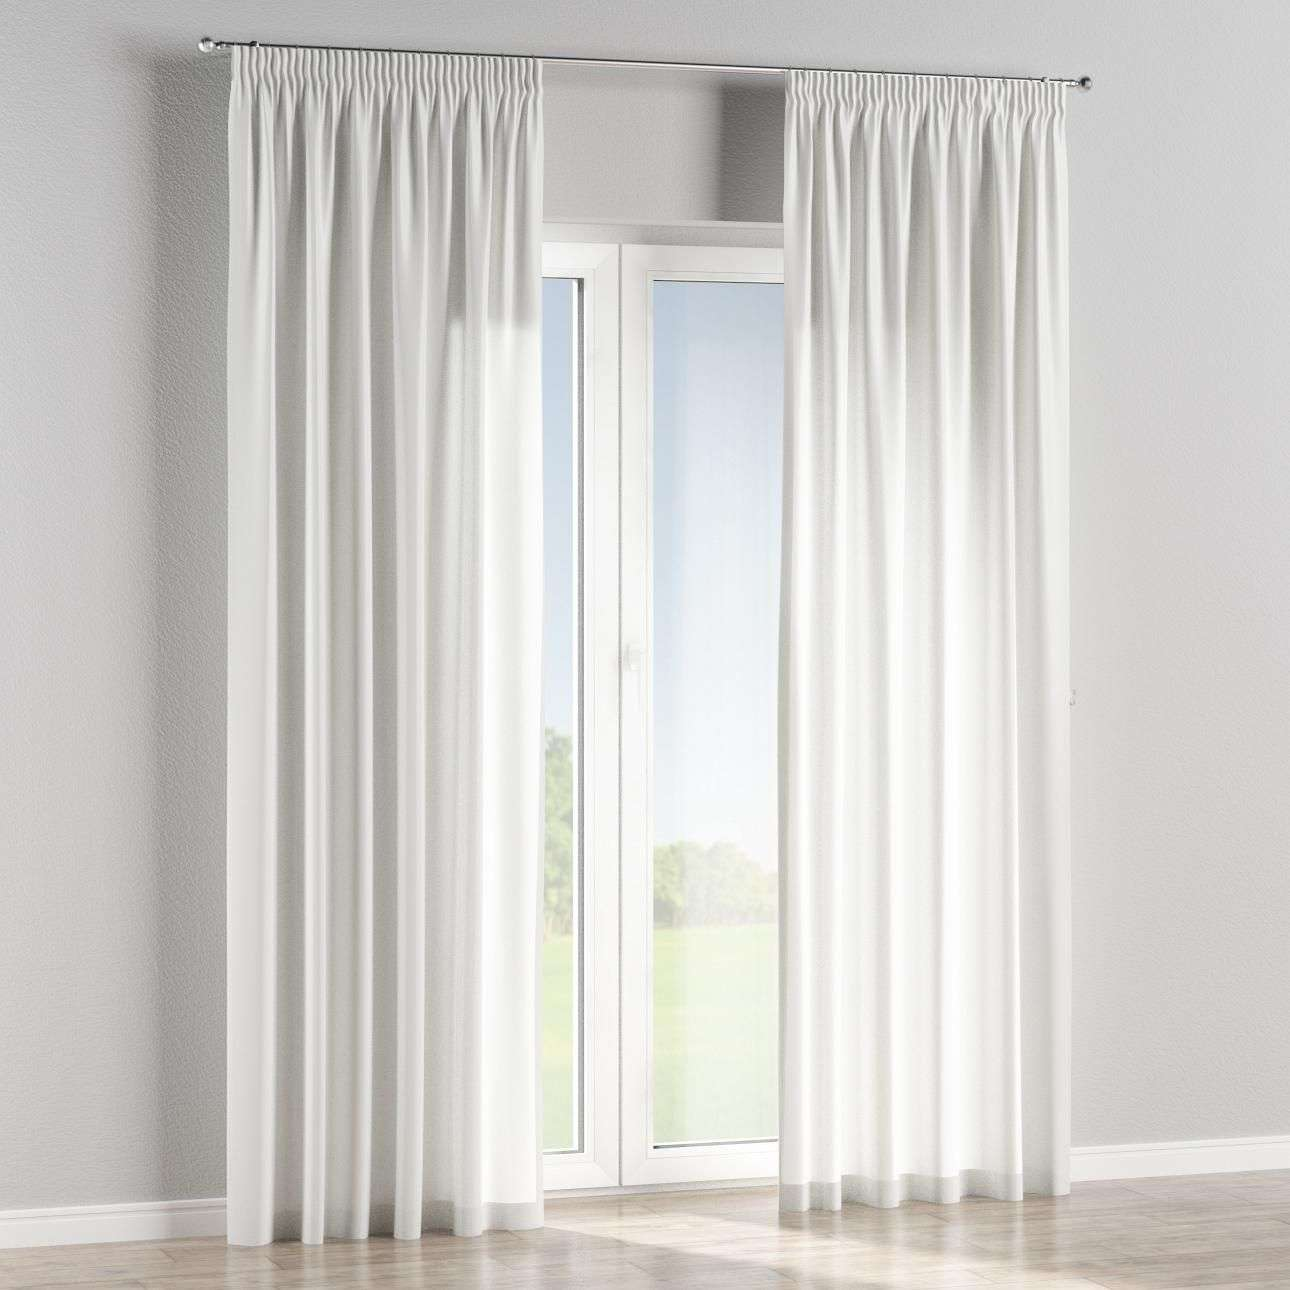 Pencil pleat curtains in collection Ashley, fabric: 137-49